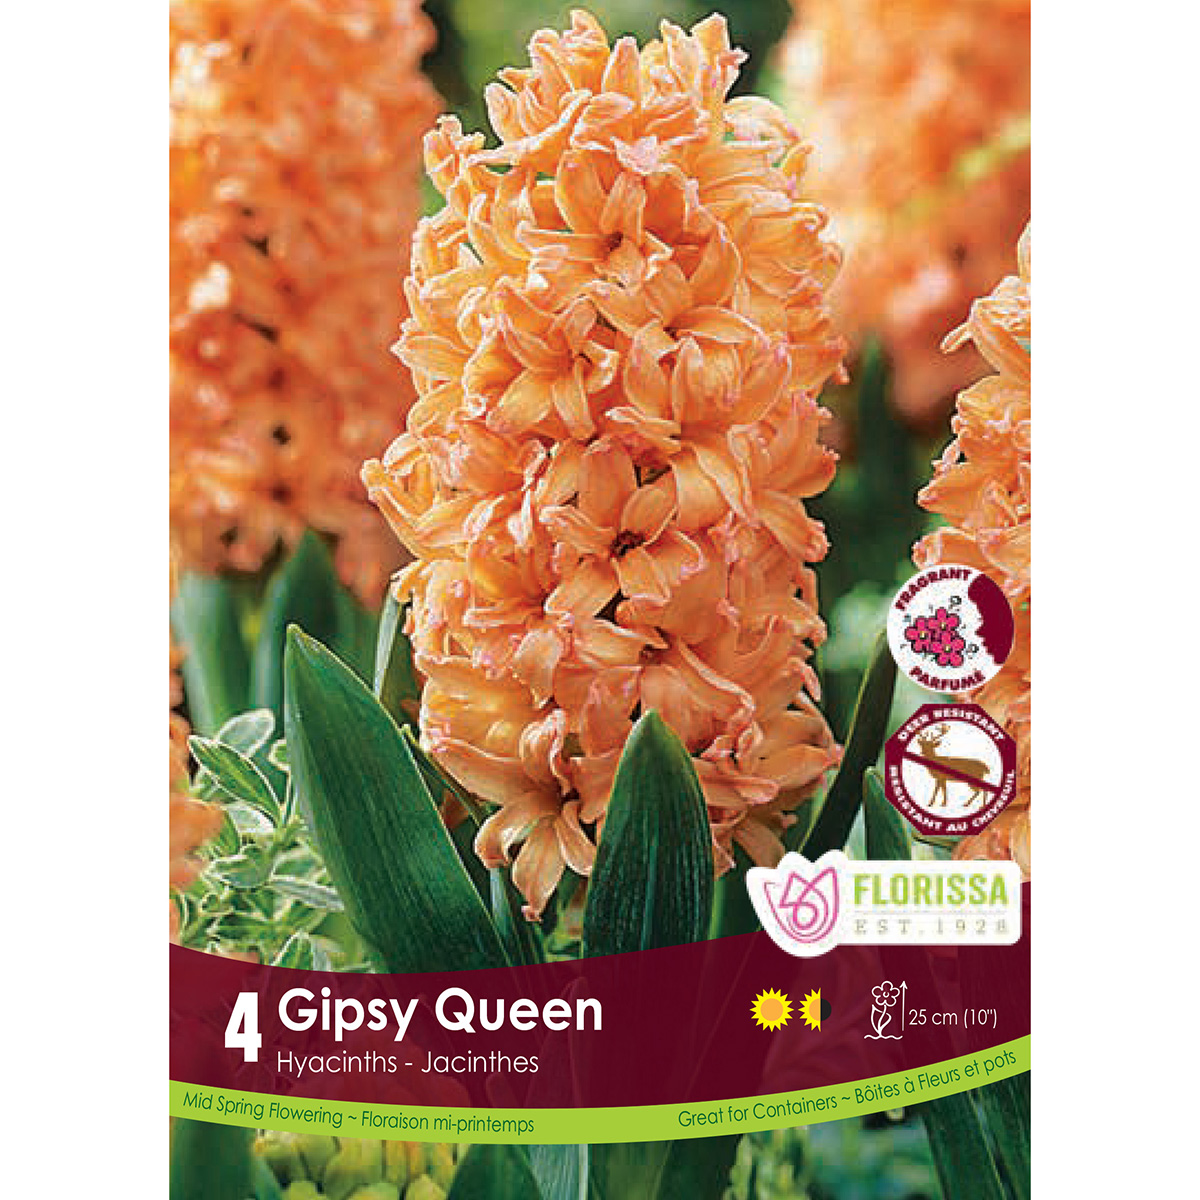 Hyacinthus 'Gipsy Queen' Bulbs 4PK